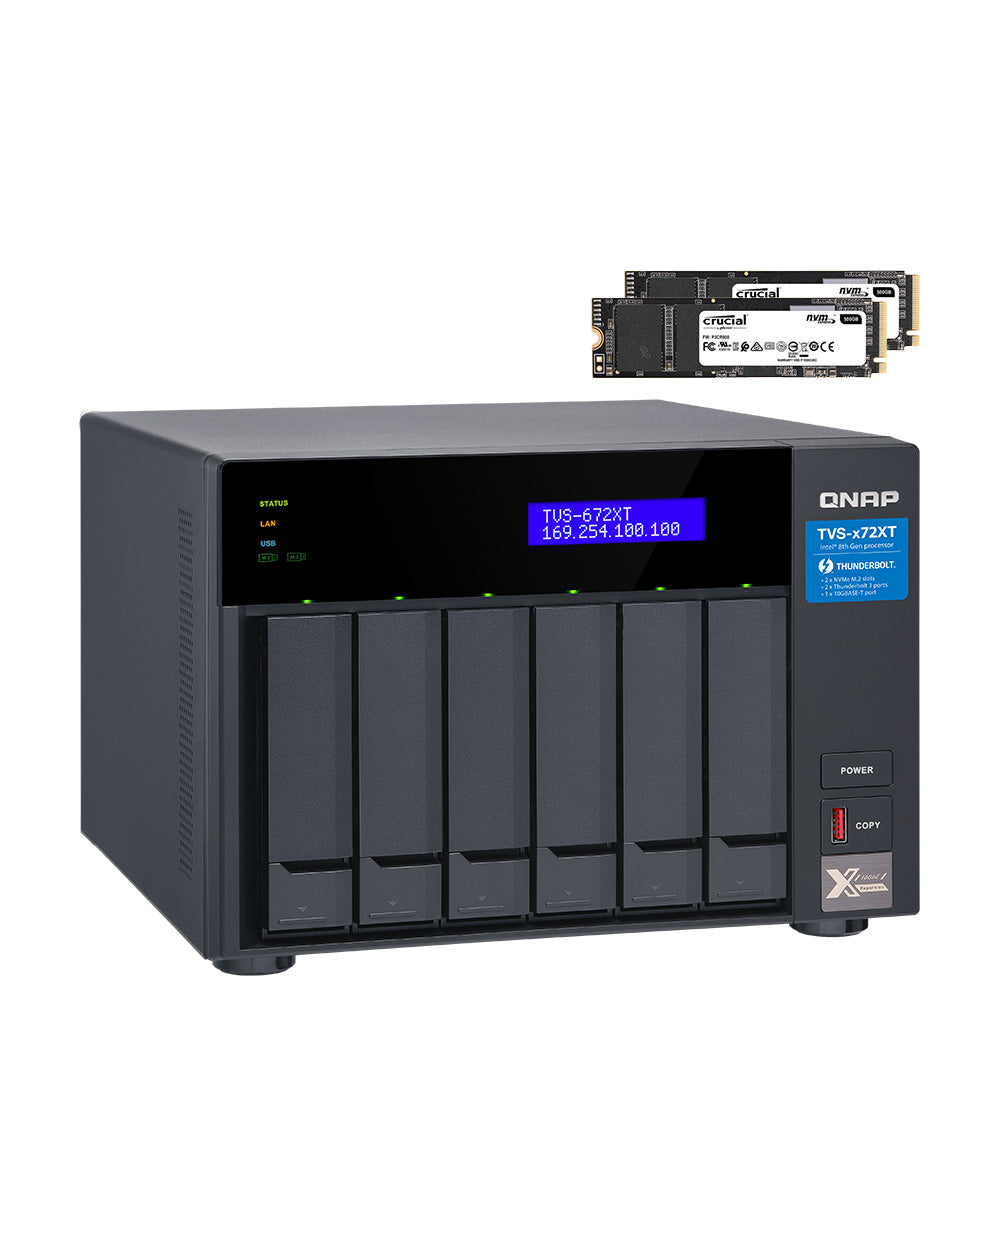 QNAP TVS-672XT-i3-16G with FREE 2 x 512GB NVMe SATA M.2. Installed and ready to go